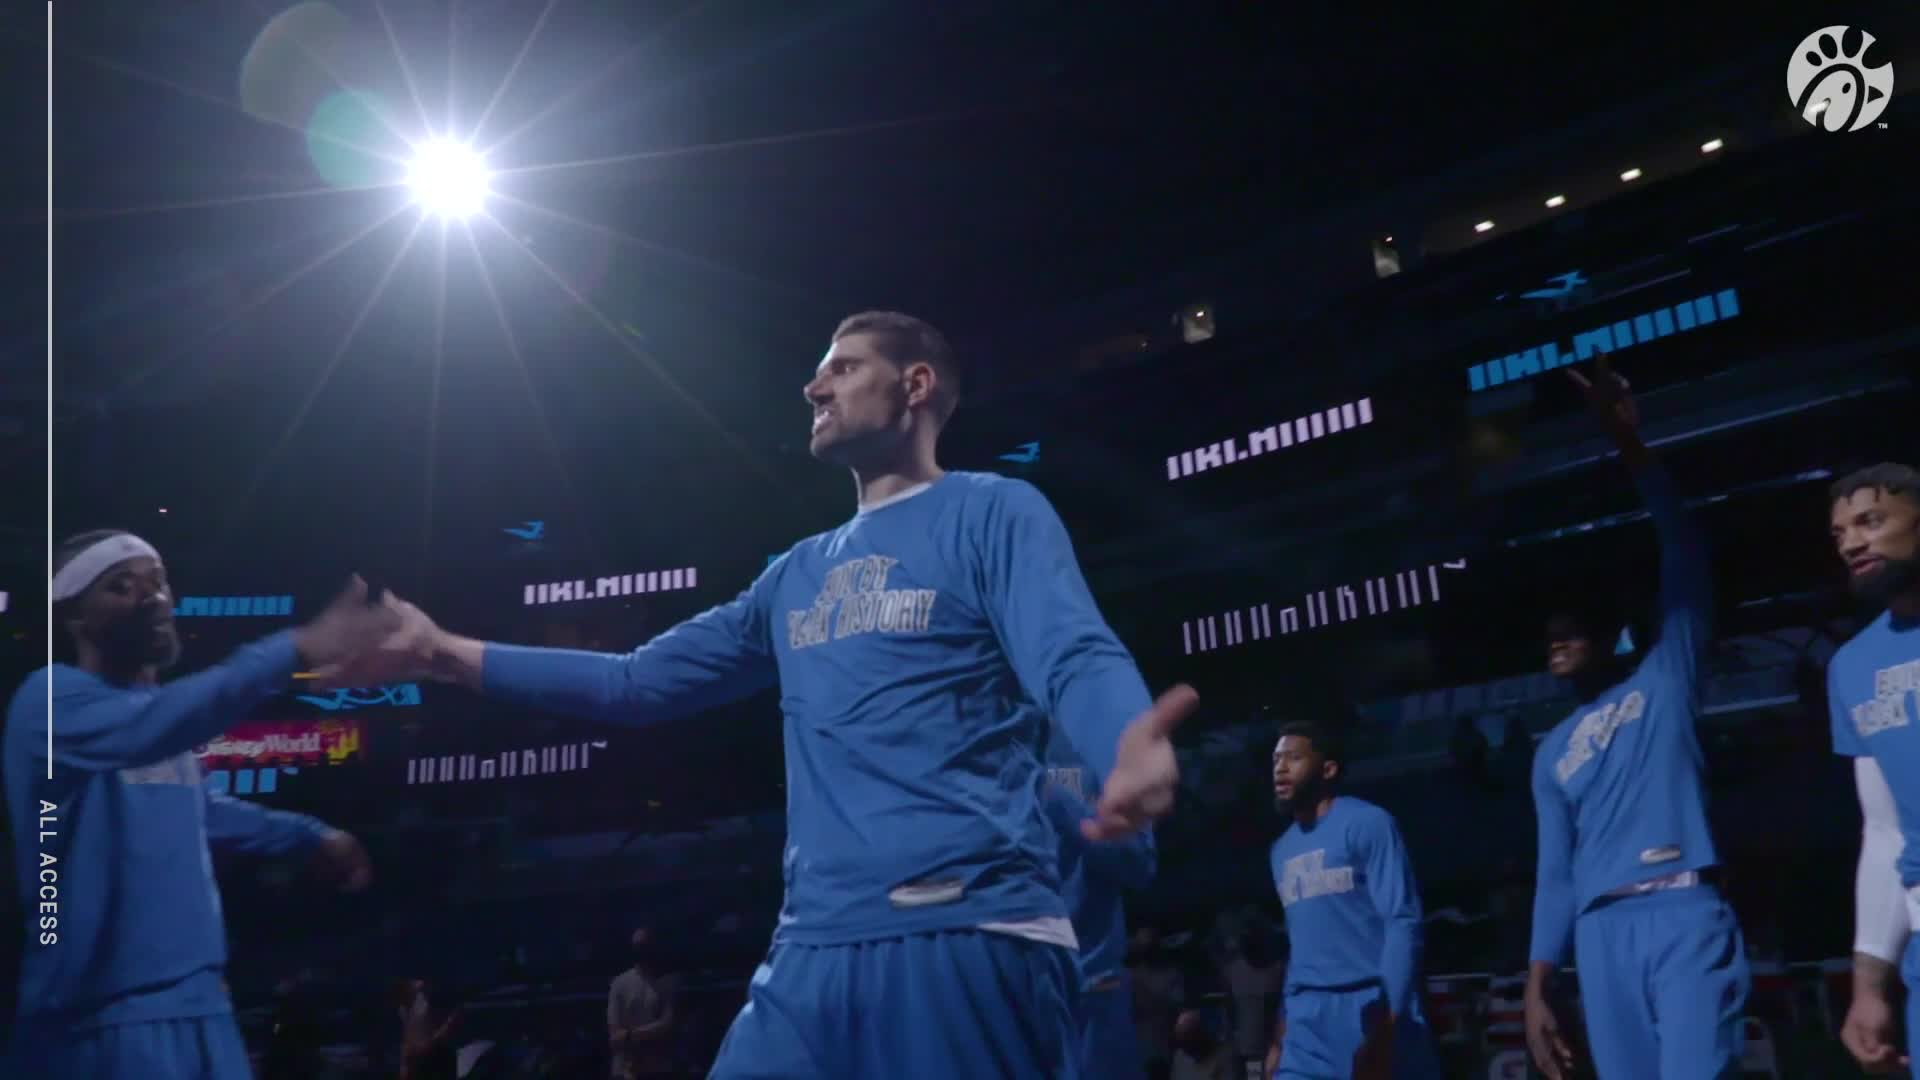 Orlando Magic All Access: Episode 9 | Presented by Chick-fil-A